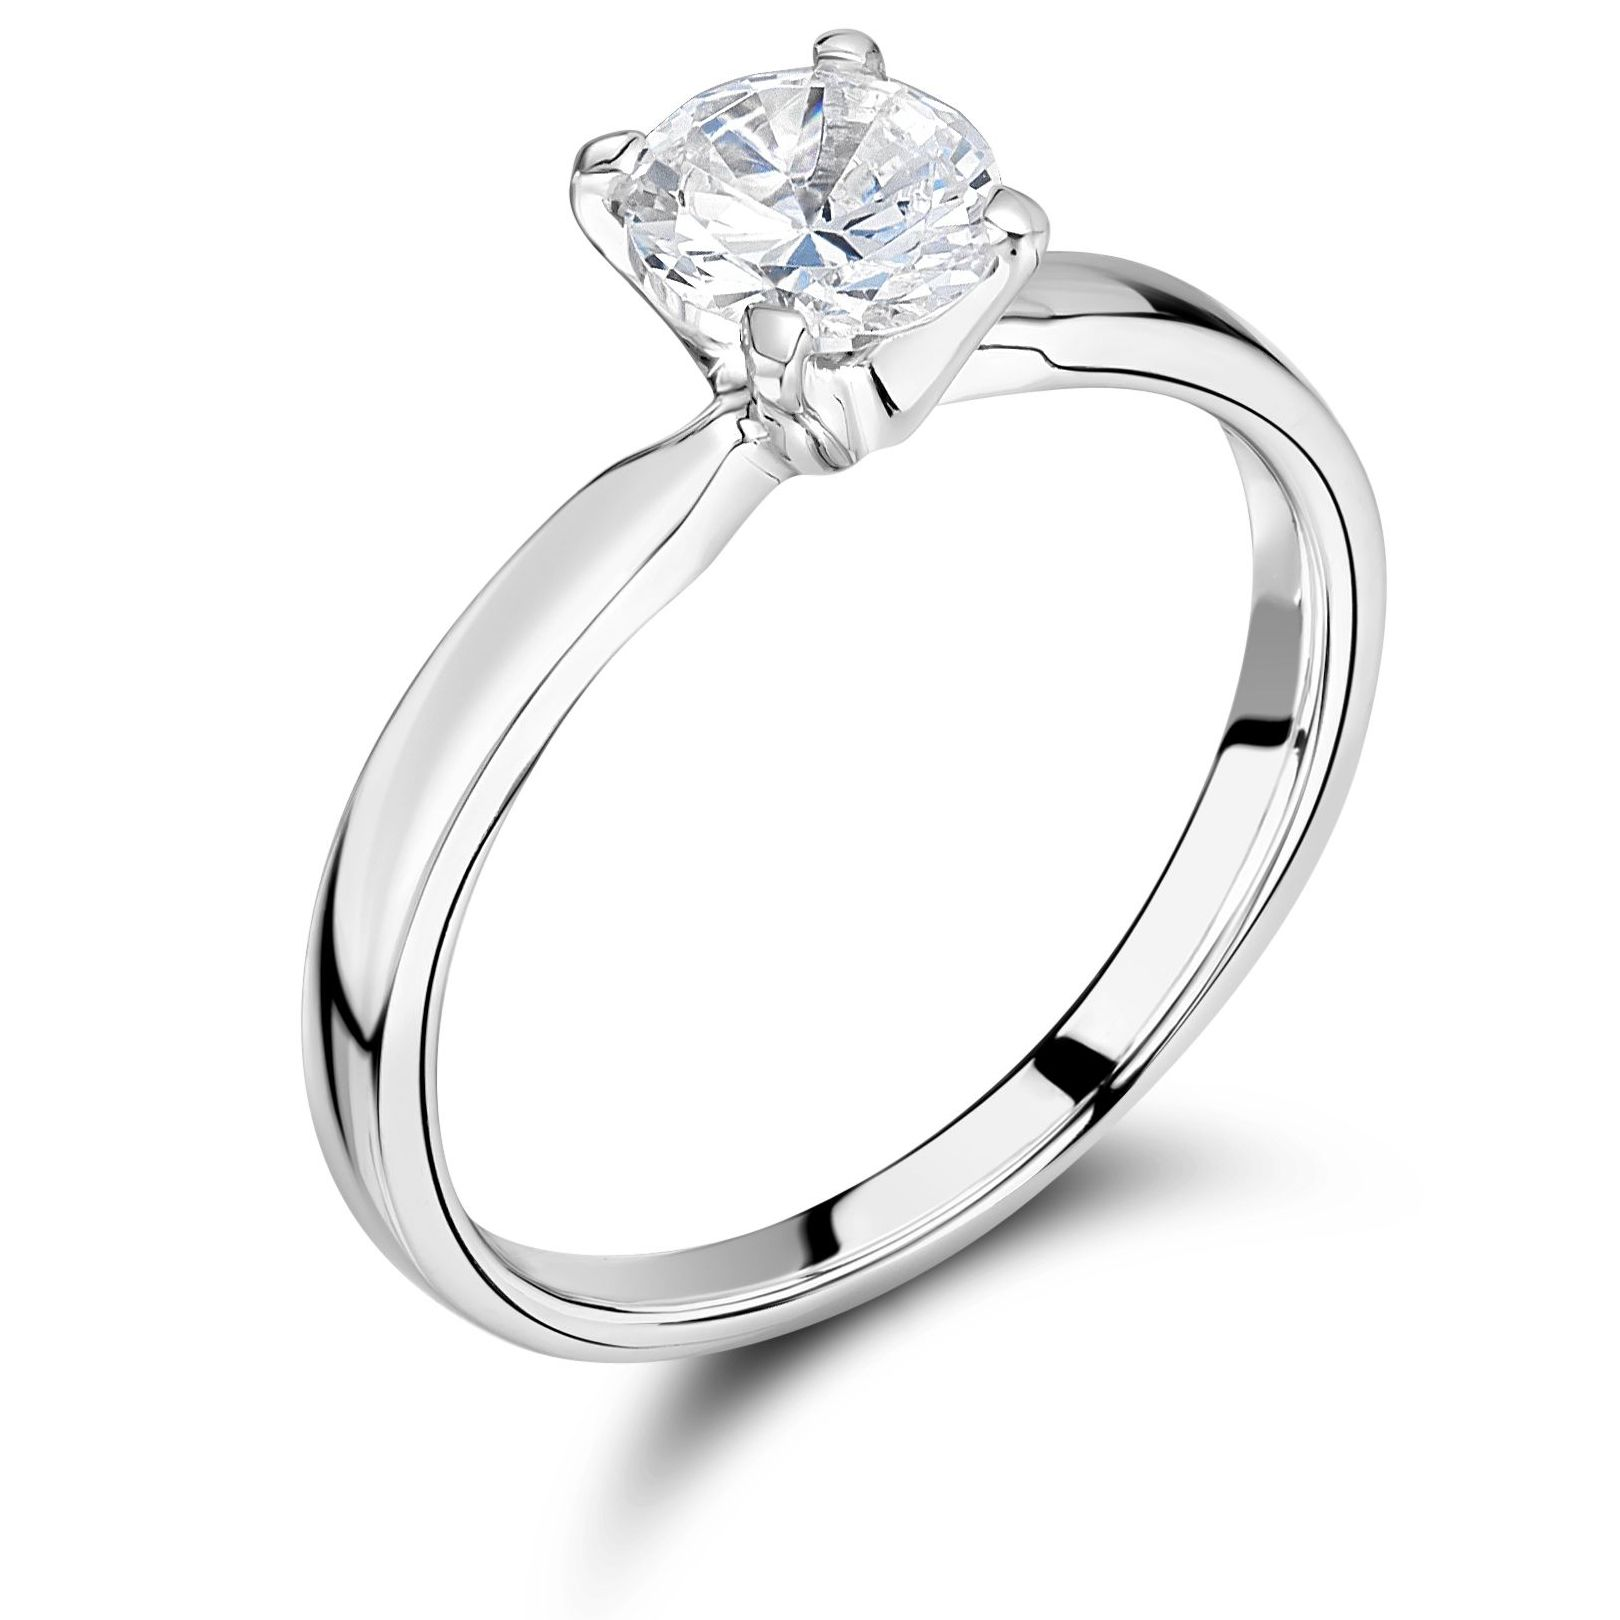 Solitaire Engagement Ring Platinum UK Brilliant Cut Diamond 4 Prongs